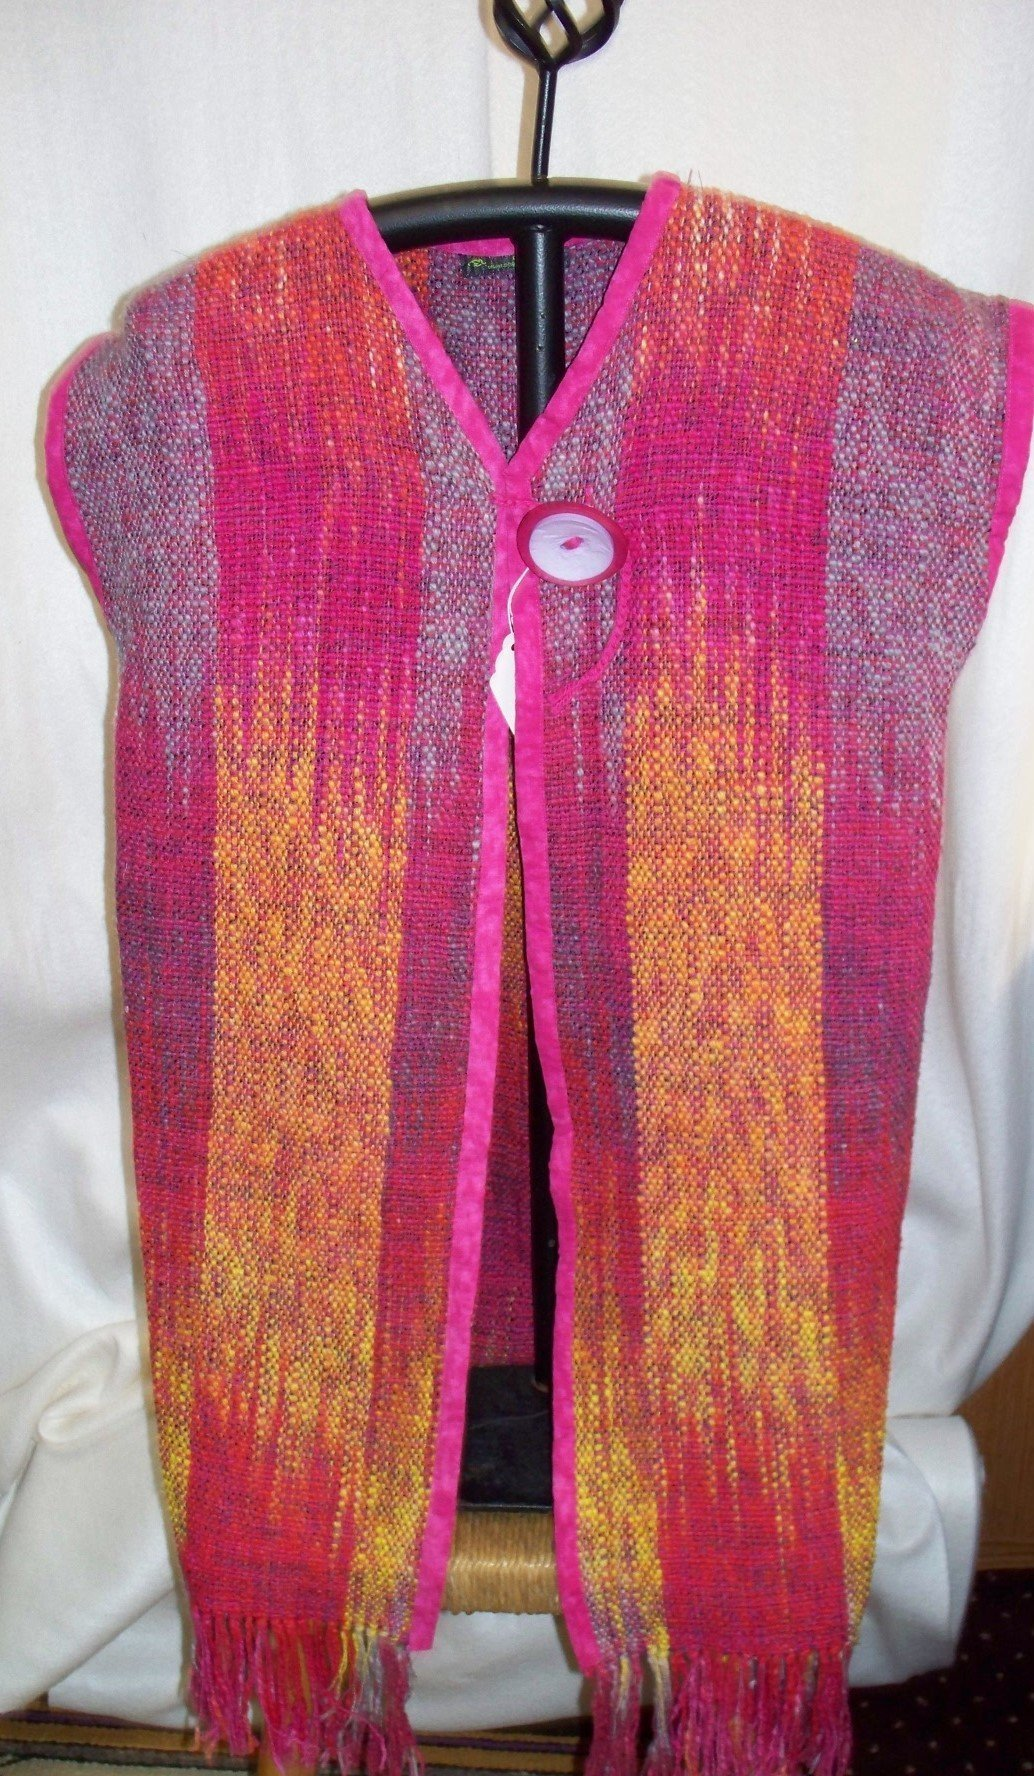 Handwoven Cotton Vest by Michigan WEaver by Phaneuf Pharm Weaving and Yarn